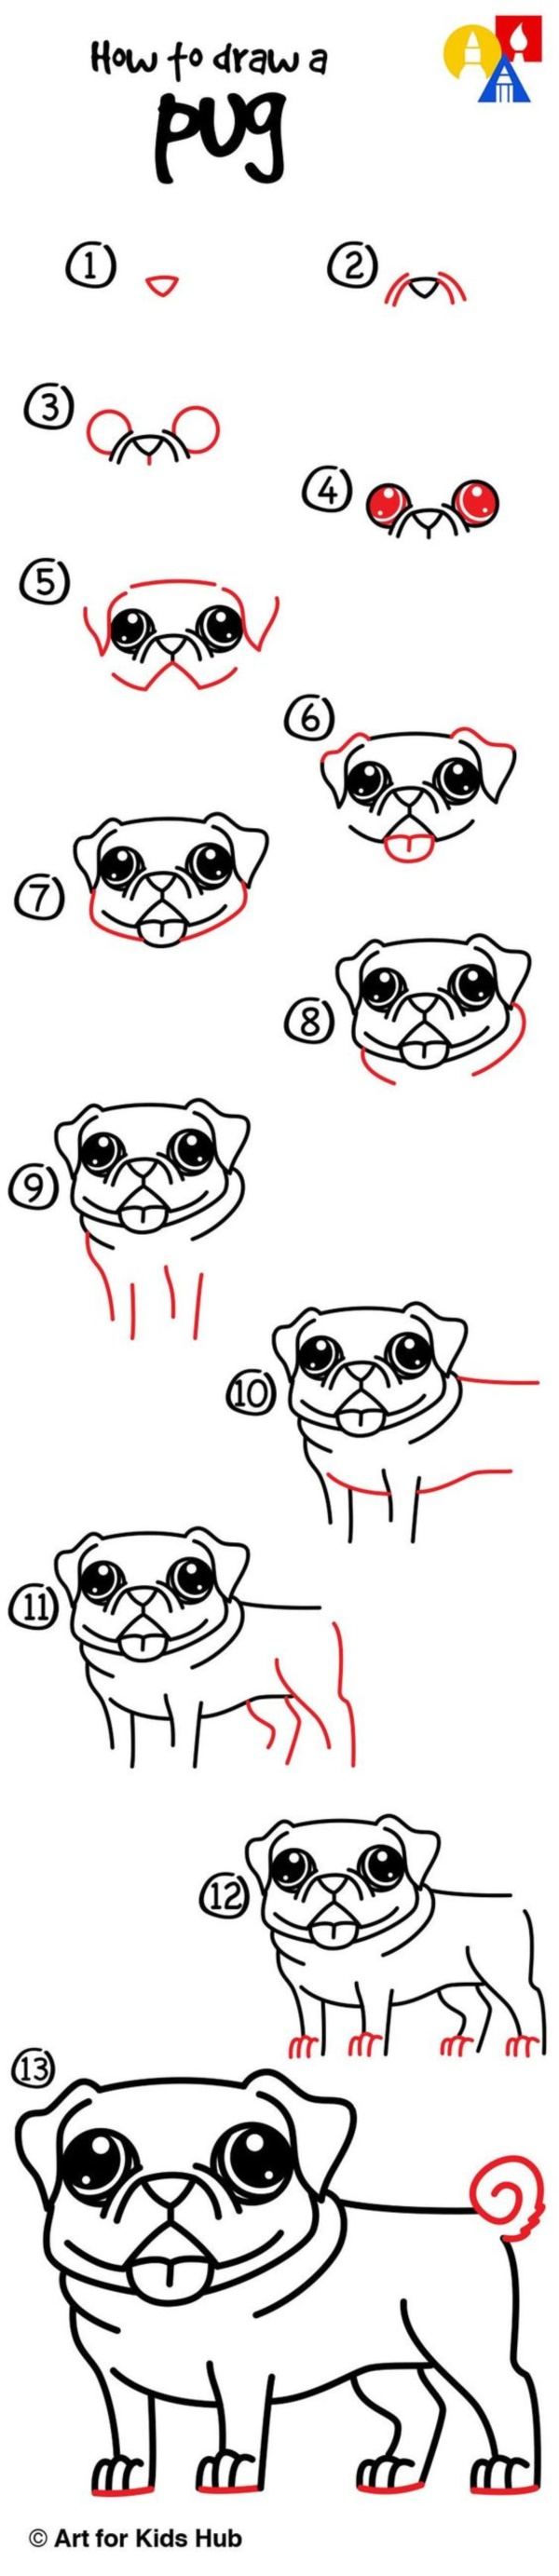 how-to-draw-doodles0271